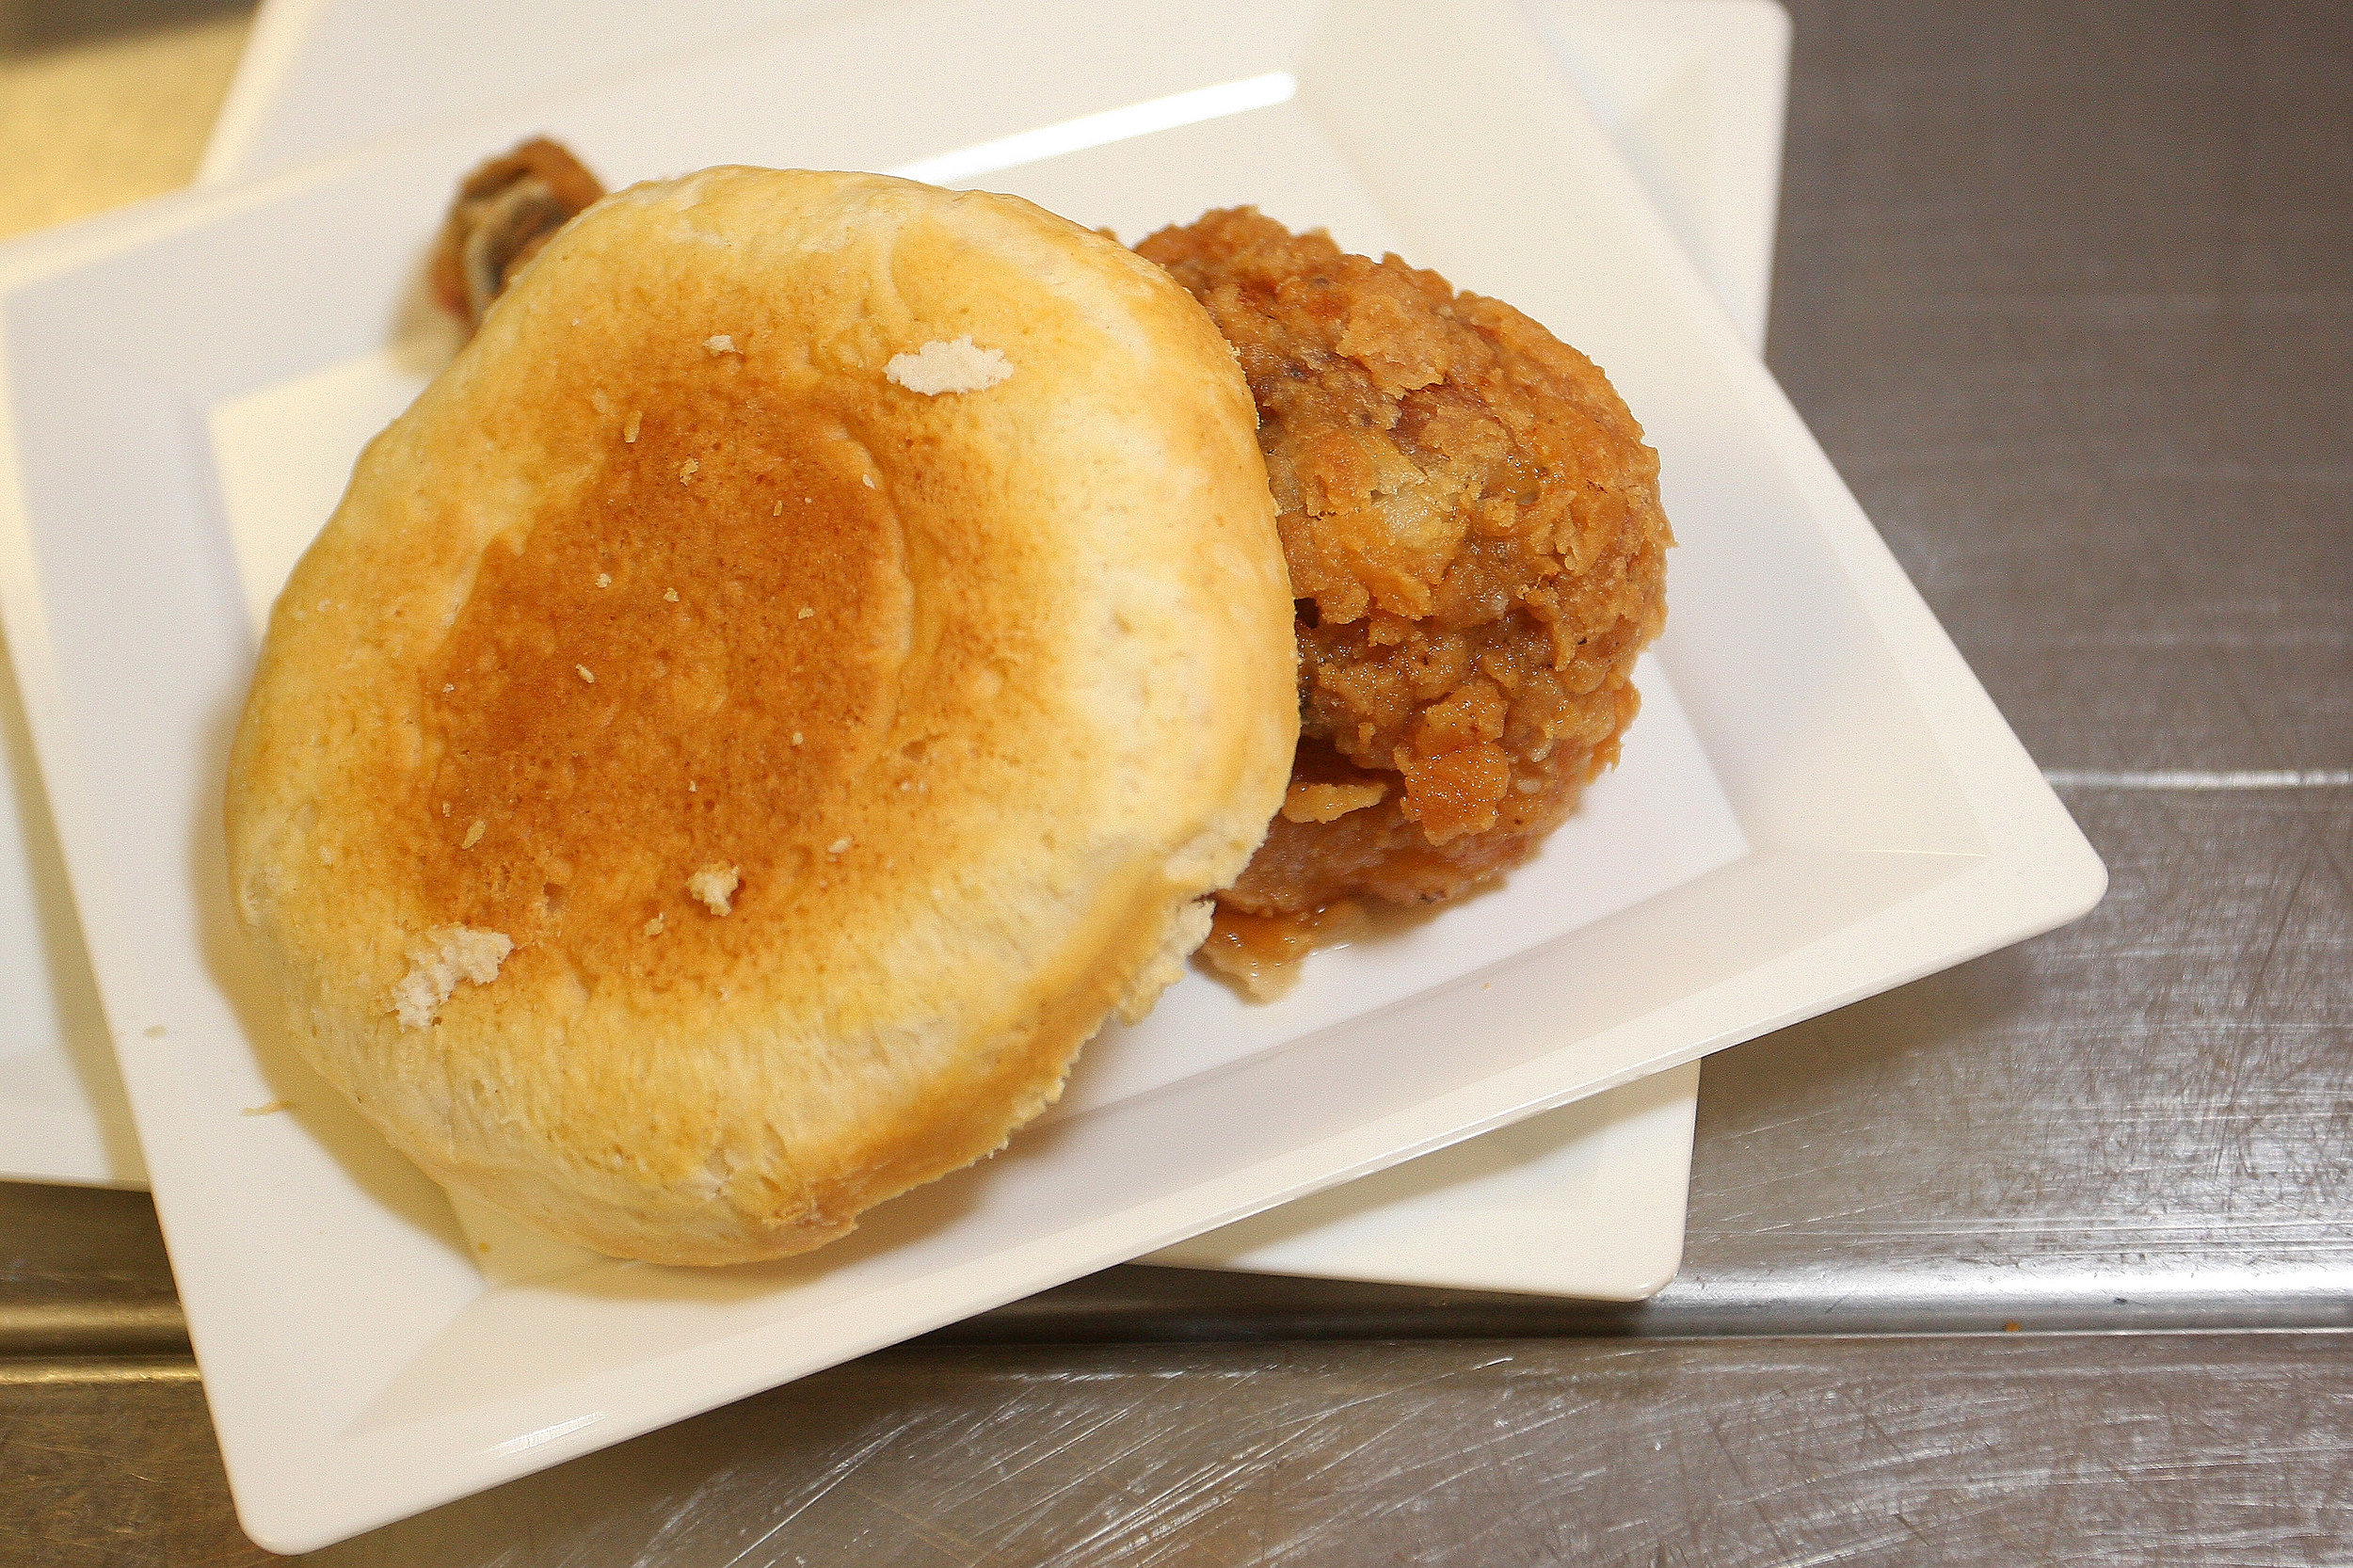 These places are what we're missing in Grand Junction. Why isn't there a Bojangles' anywhere close to here? These five places are what Grand Junction needs.